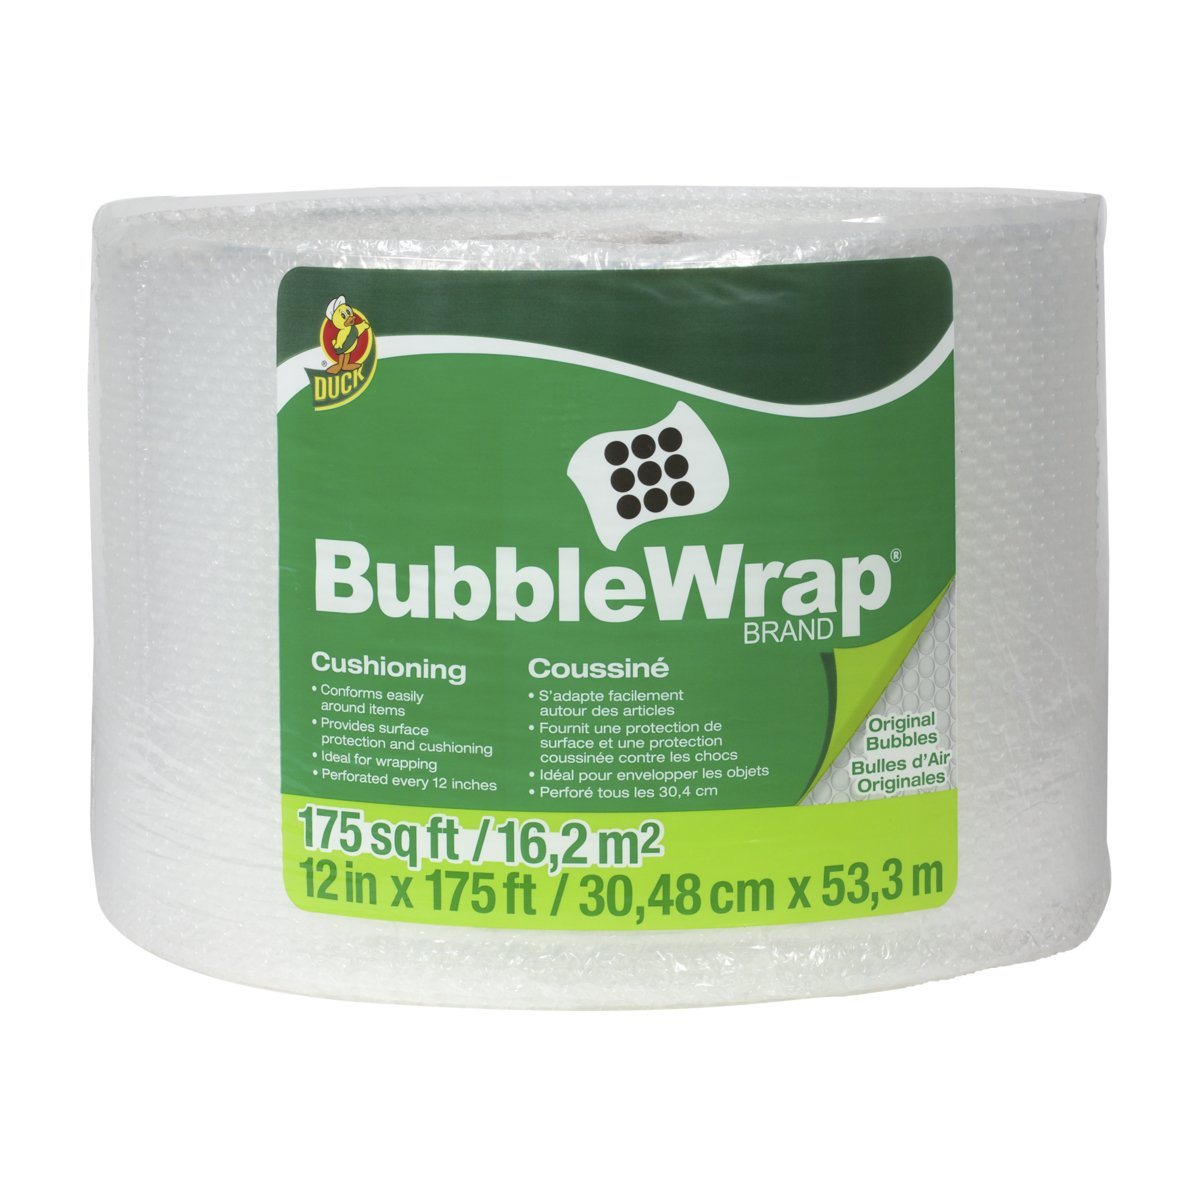 Duck Brand Bubble Wrap Roll, Original Bubble Cushioning, 12'' x 175', Perforated Every 12'' (1053440) by Duck